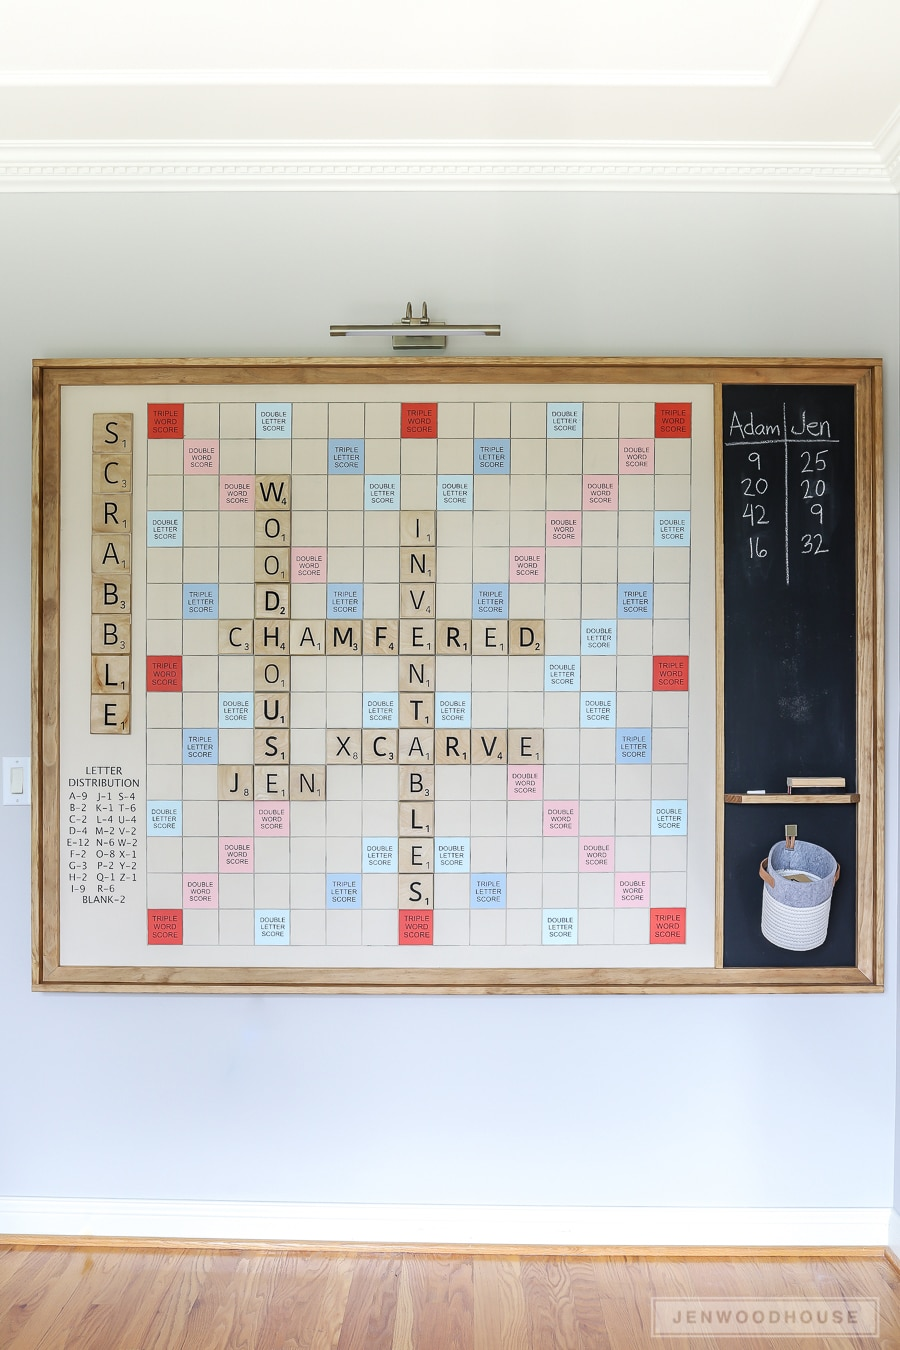 How to build an oversized Scrabble board